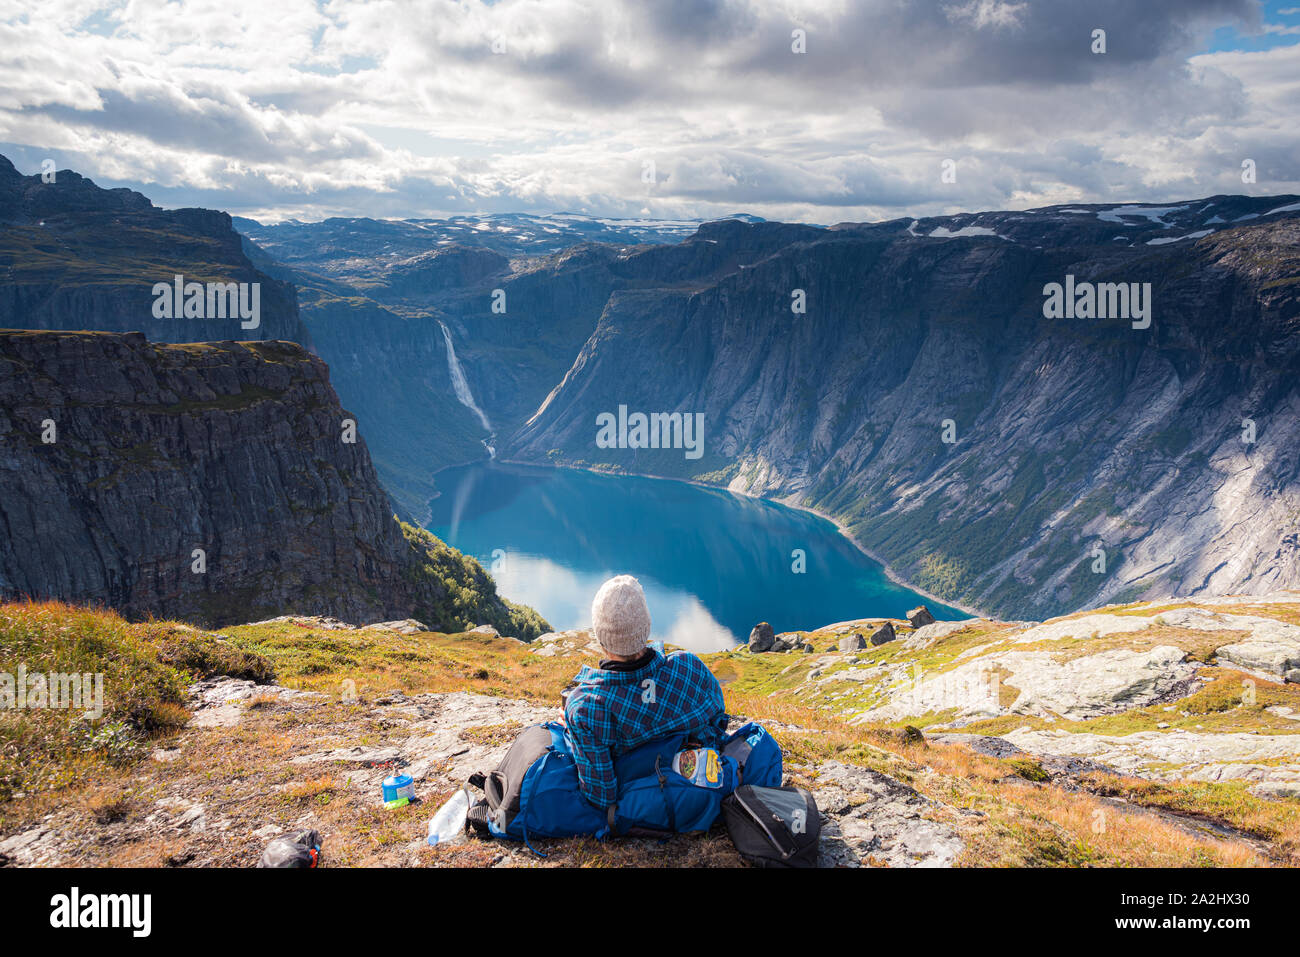 0209-17-tyssedal-norway-a-man-is-taking-a-break-from-the-hike-to-the-cliff-of-trolltunga-enjoying-the-view-of-the-reservoir-lake-ringedalsvatnet-2A2HX30.jpg